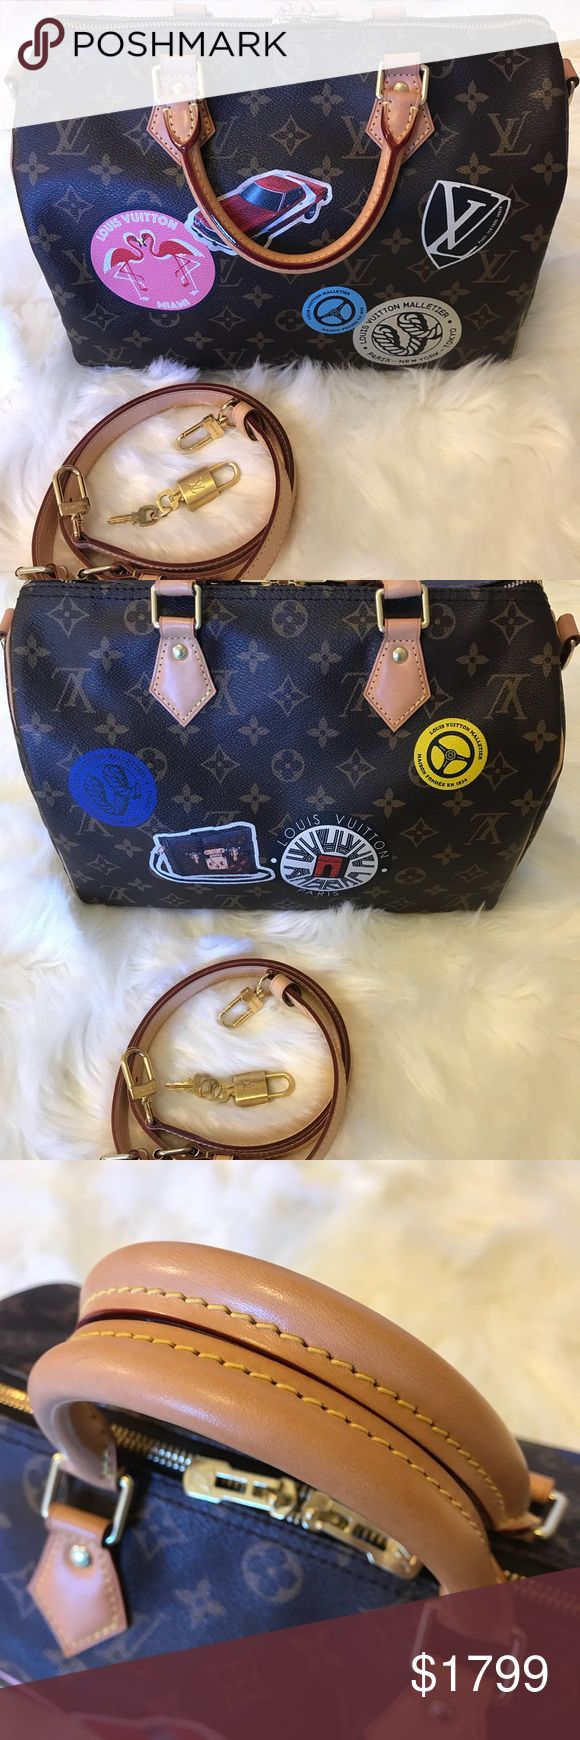 Louis Vuitton Ltd World Tour Speedy 30 Bandouliere Limited edition World Tour Speedy 30 Bandouliere from Louis Vuitton up for sell! Interior is pristine. No marks, stains or holes in interior. Stickers look good. Only very slight rubbing on bottom corners from normal wear, slight water marks which have faded with the nice patina on the vachetta. Still smells new! From smoke free home. 100% authentic.   Comes with dust bag, Shoulder strap and lock and keys. I am selling part of my collection.